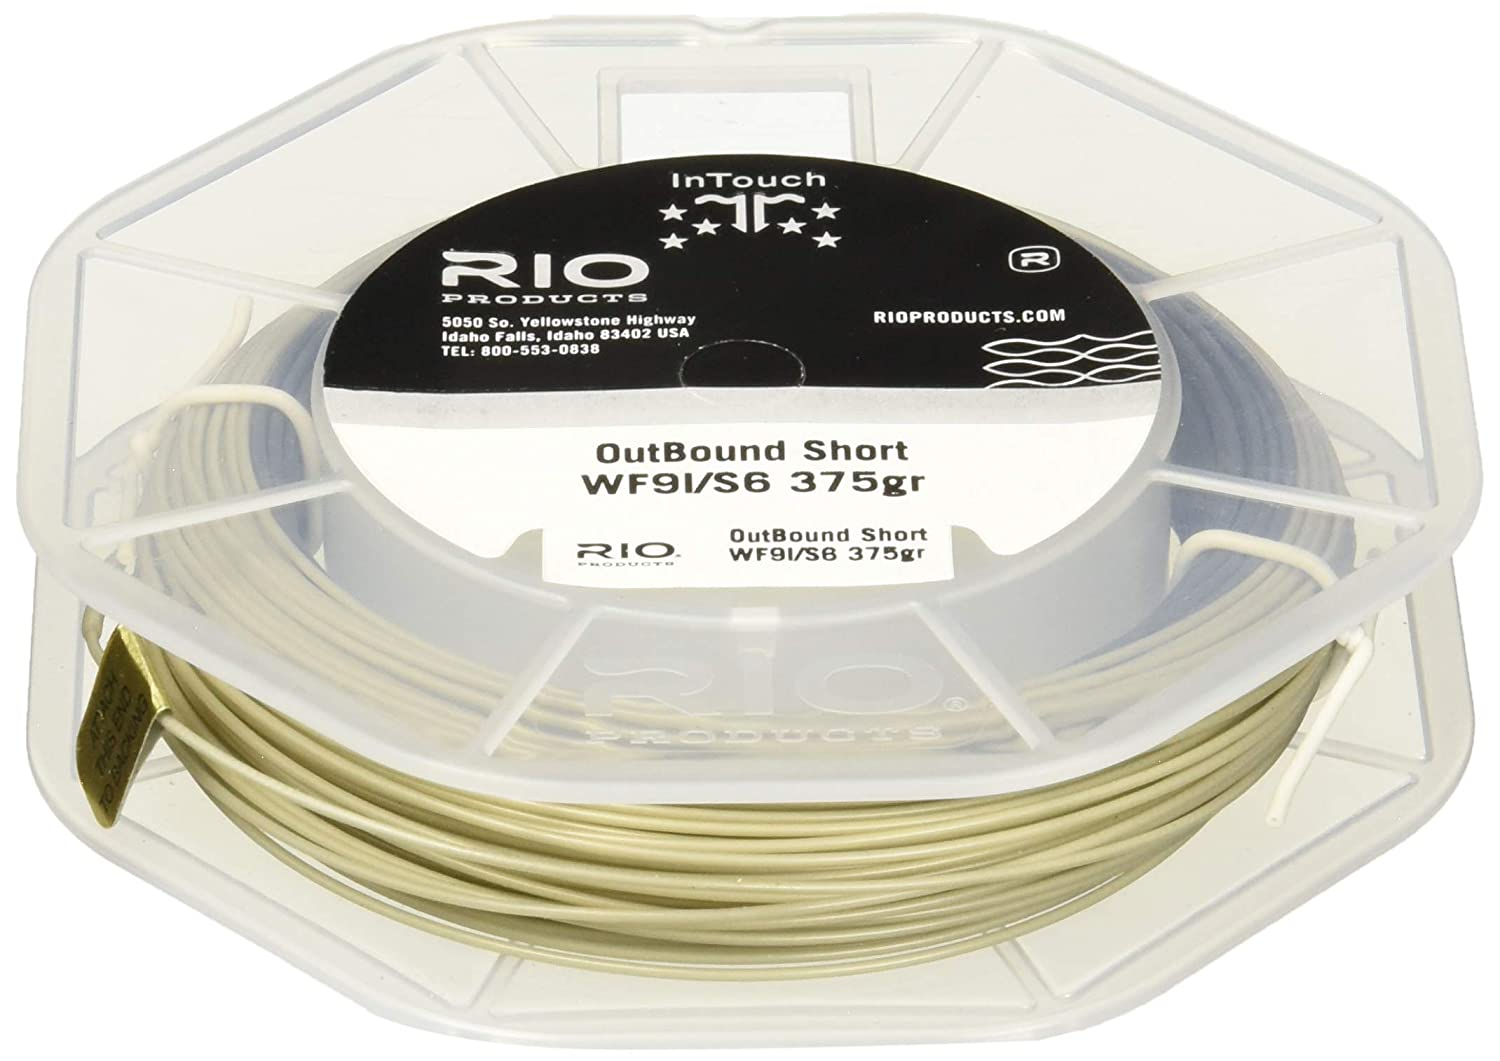 Brown-Yellow RIO Products Fly Line Intouch Outbound Short Wf8I//S3 Brow//Yellow